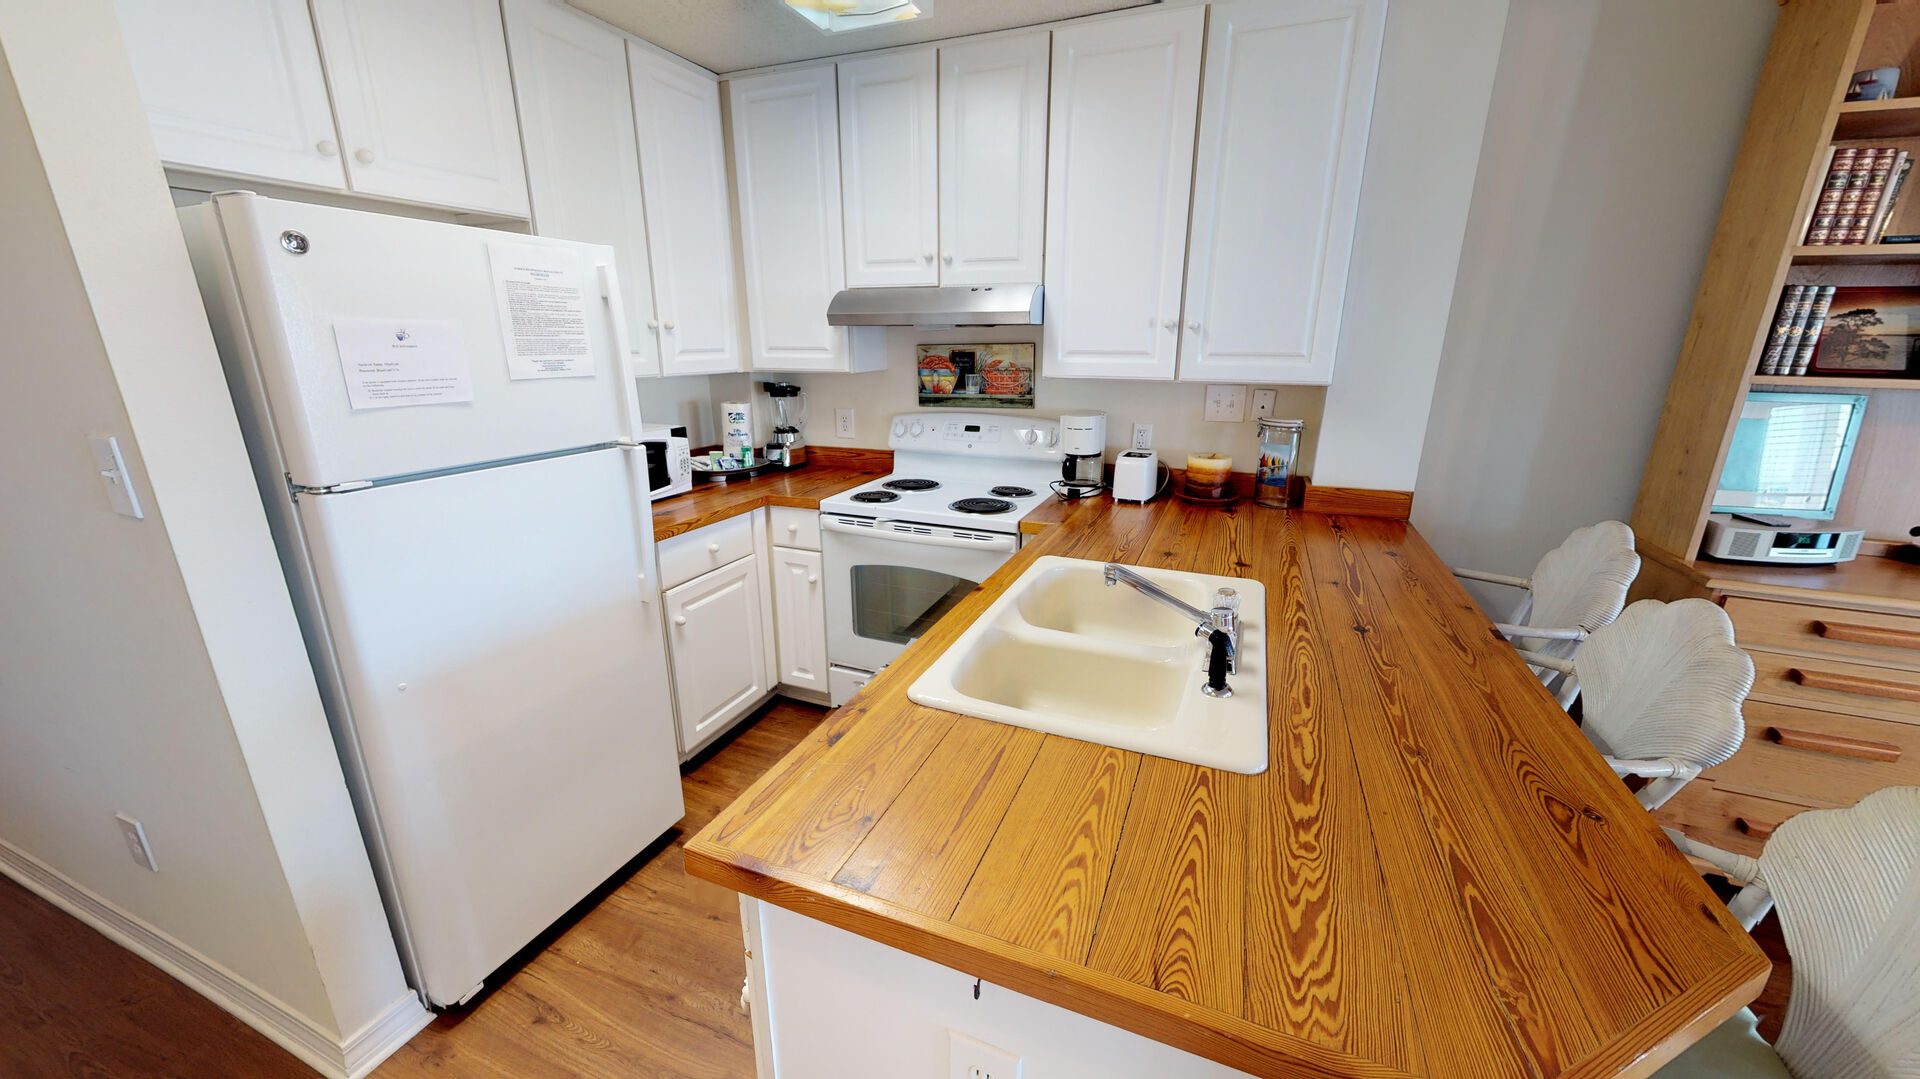 Apartment kitchen is fully equipped to prepare meals